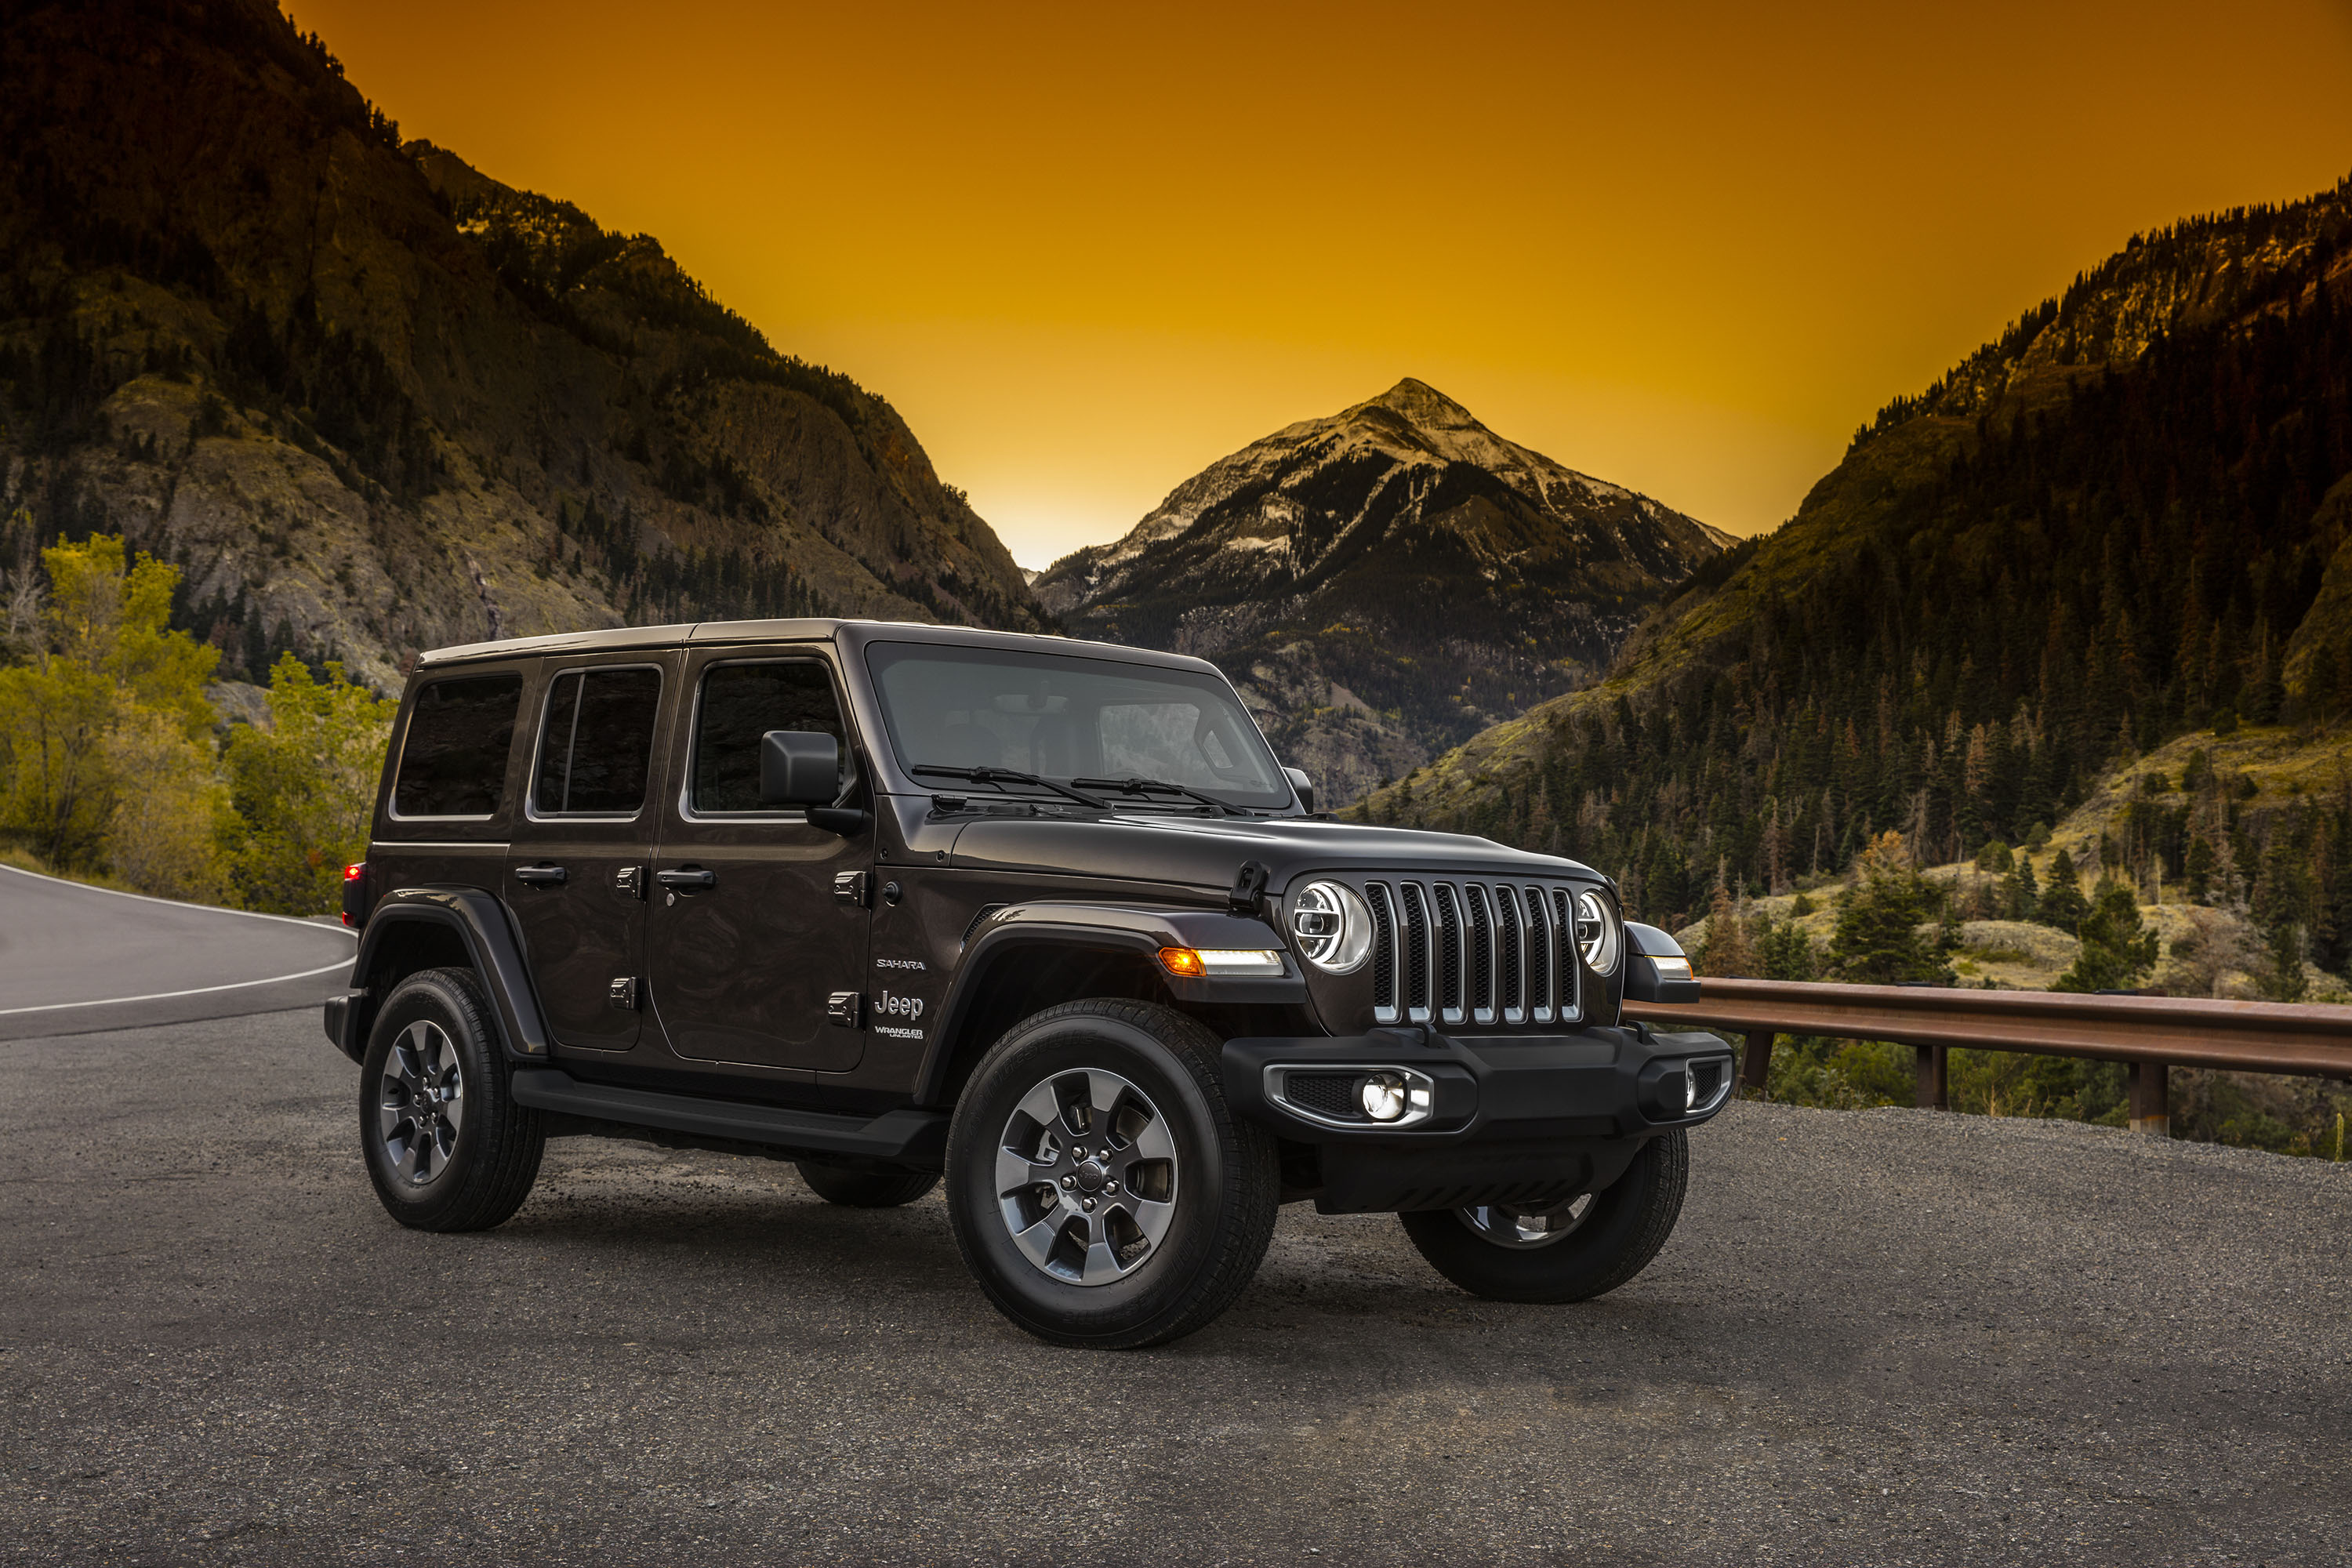 2018 Jeep Wrangler Can Tow As Much As 3,500 Pounds | Top Speed. »